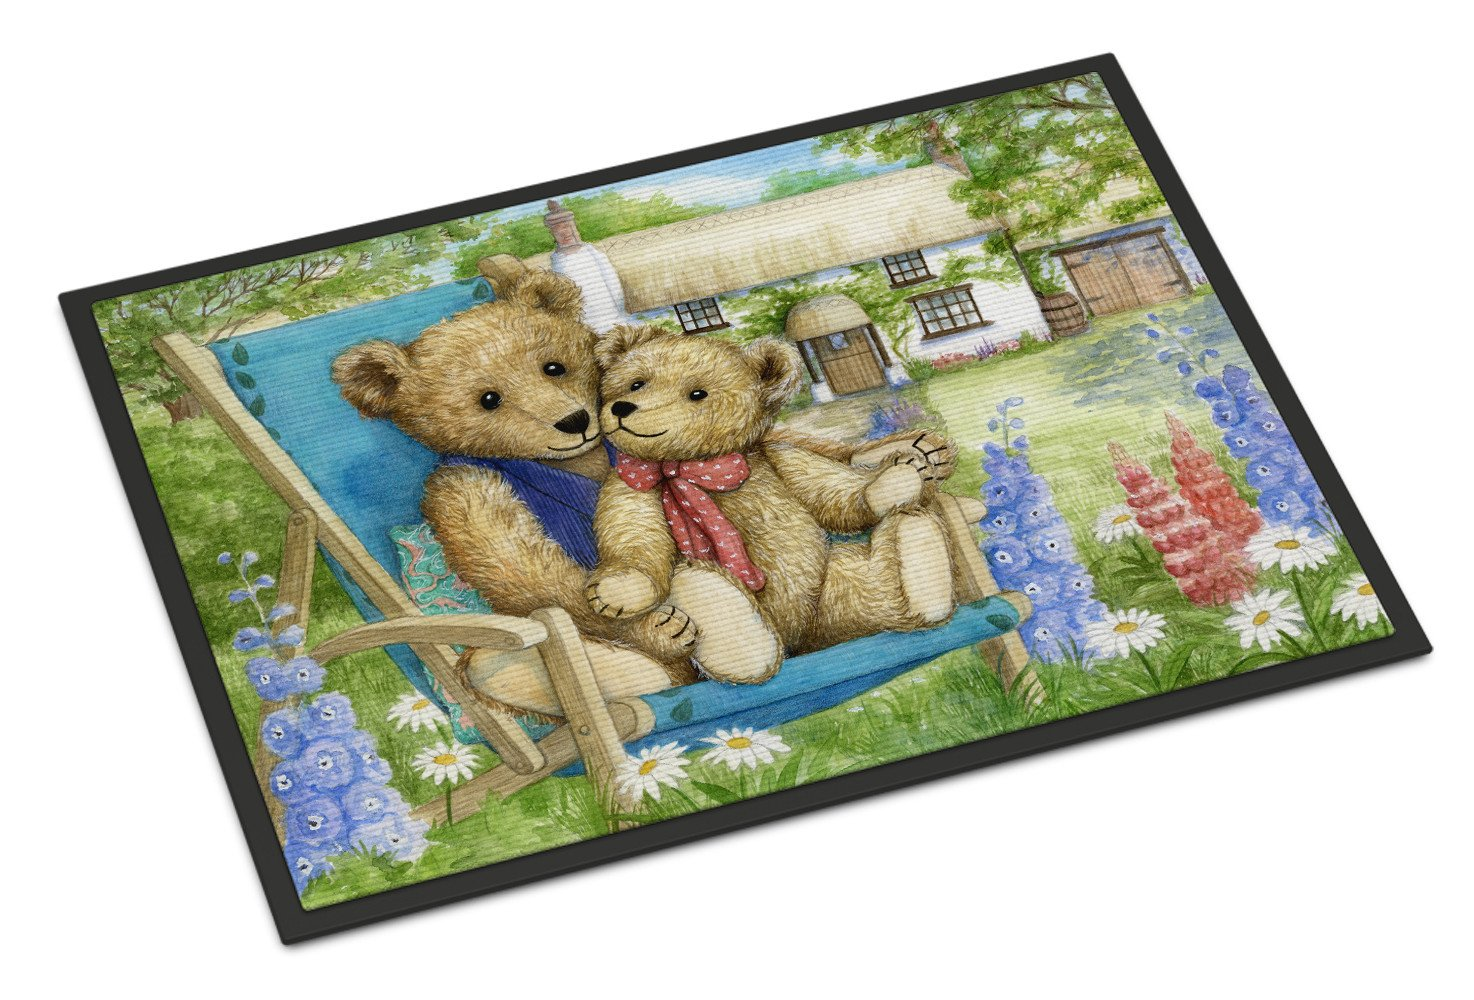 Springtime Teddy Bears in Flowers Indoor or Outdoor Mat 18x27 CDCO0306MAT - the-store.com